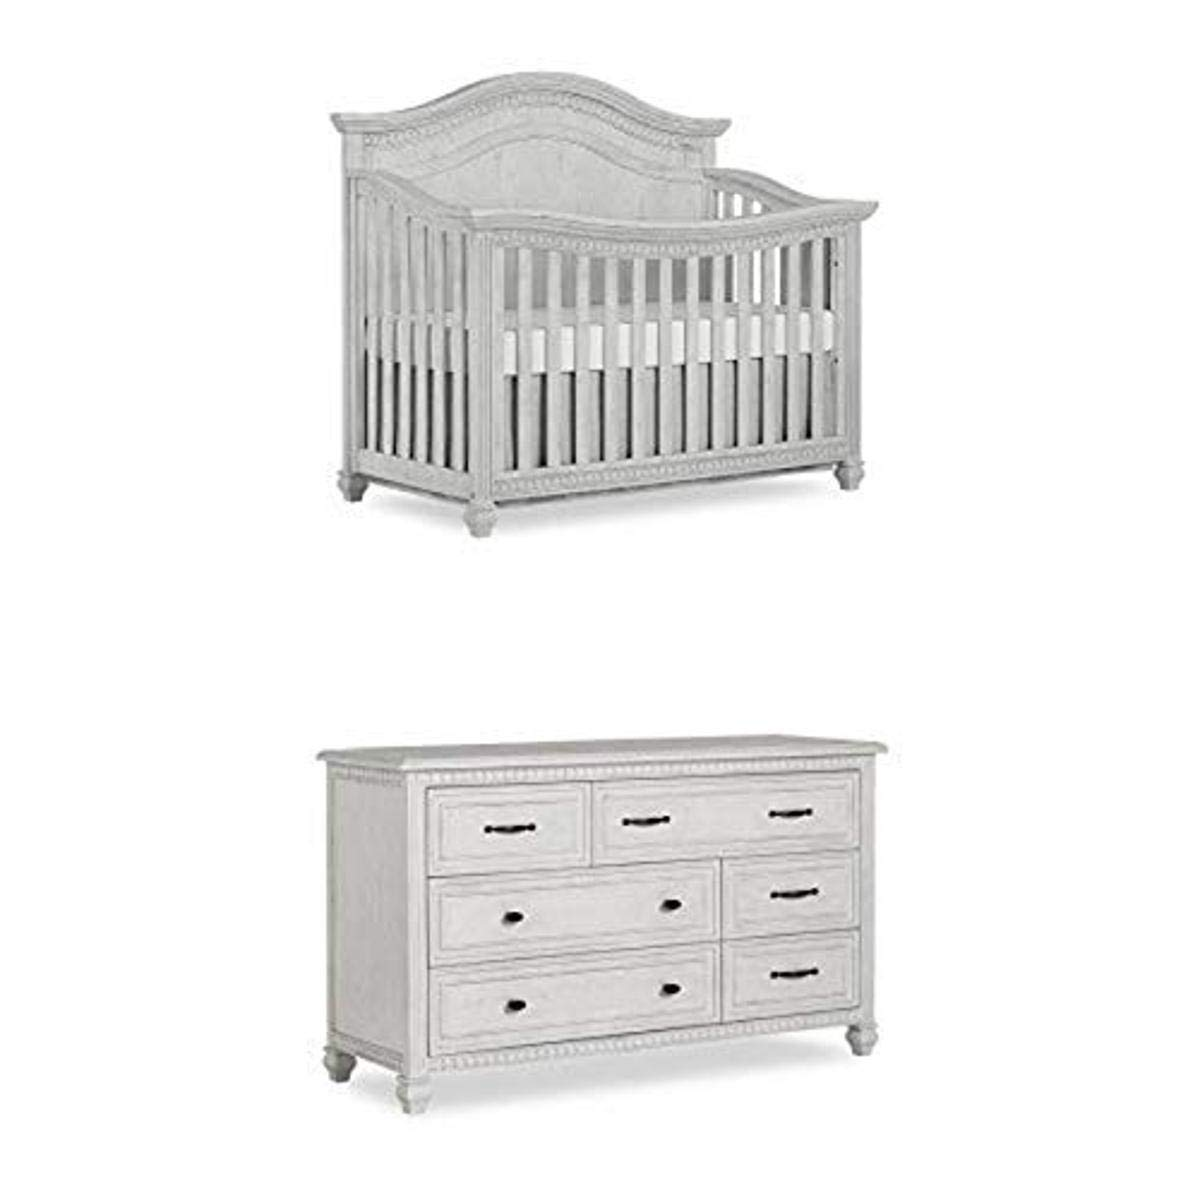 Evolur Madison 5, 1 Curved Top Convertible Crib, Antique Grey Mist with Double Dresser